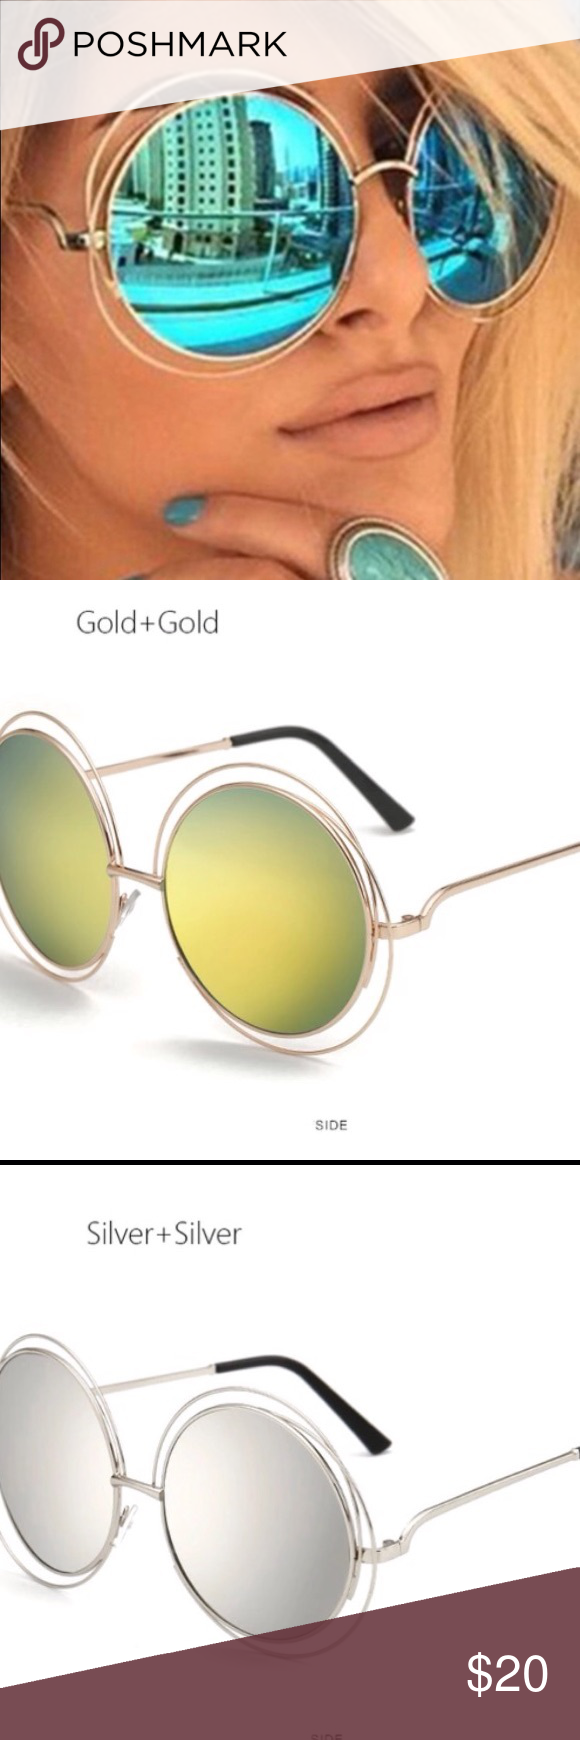 cd5d9172f01a Oversized round sunglasses blue  silver   gold Beautiful oversized round  sunglasses blue lenses gold frame  silver lenses silver frame  gold lenses  gold ...